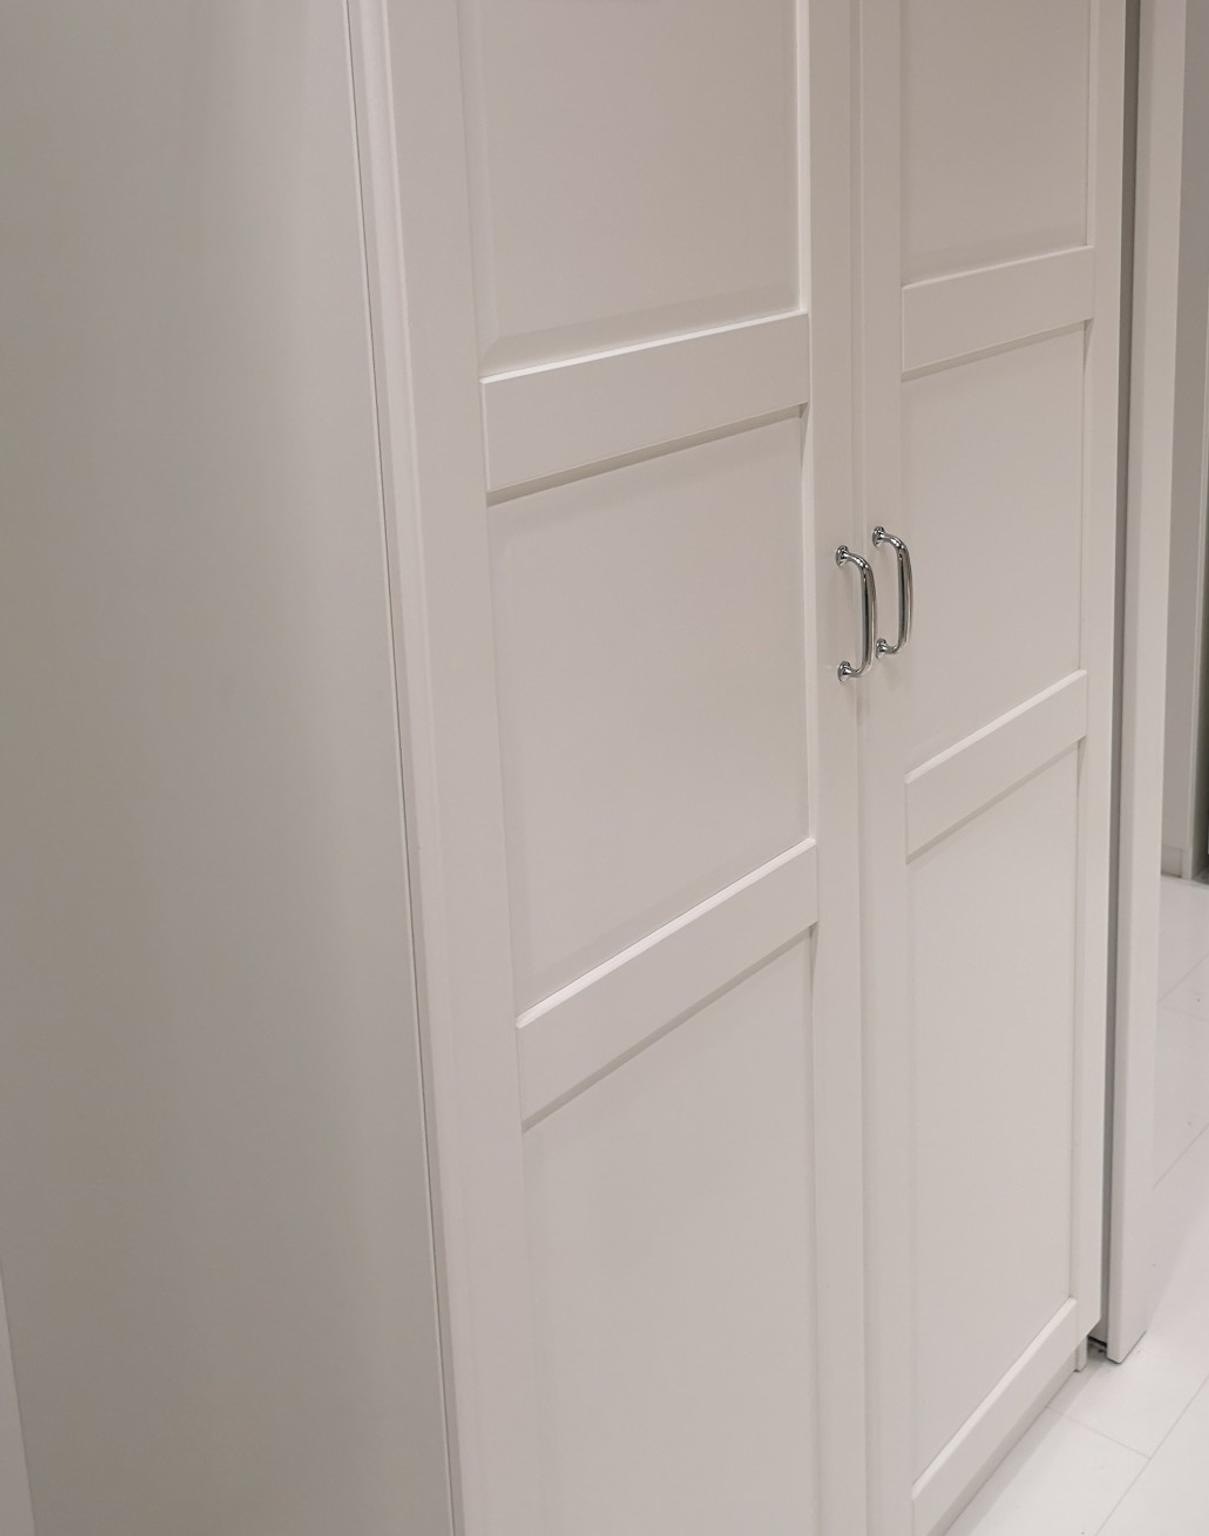 Ikea Pax Tyssedal White Wardrobe In Ba14 Southwick For 163 50